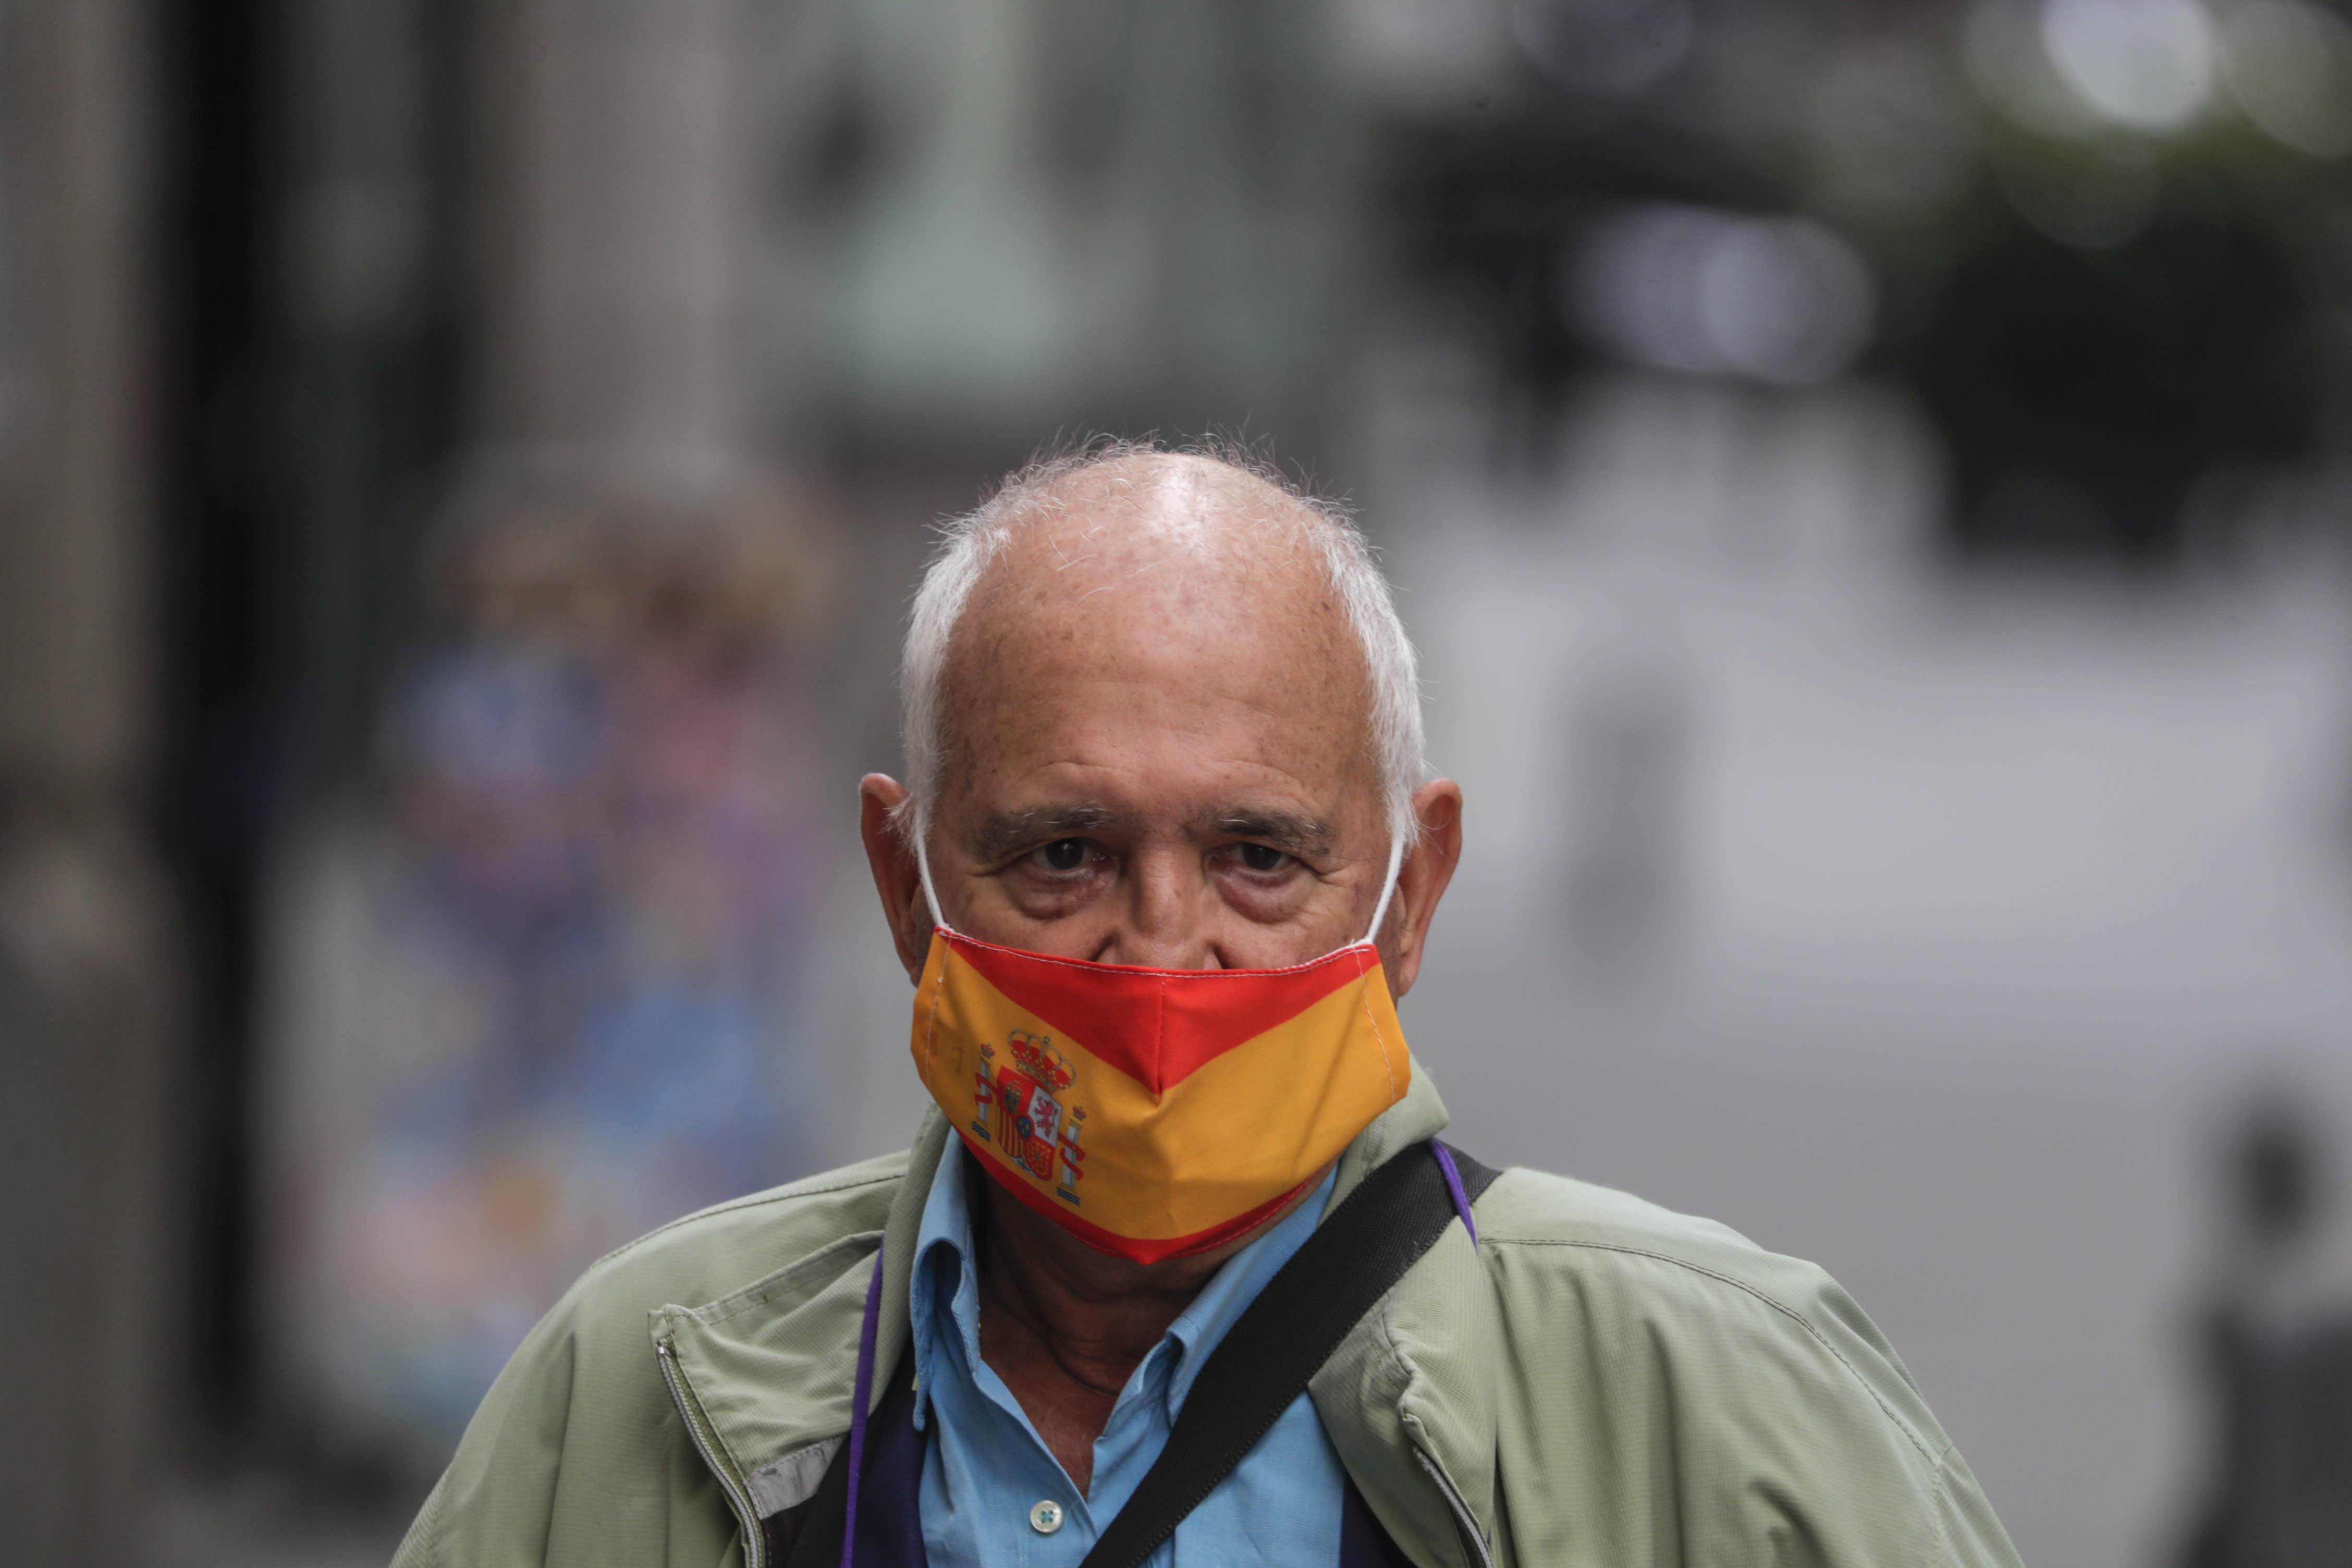 A man wearing a face mask to prevent the spread of coronavirus decorated with the Spanish flag stands in a street in downtown Madrid, Spain, Friday, Sept. 18, 2020. With more than 11,000 new daily coronavirus cases, the attention in Spain is focusing on its capital, where officials are mulling localized lockdowns and other measures to bring down the curve of contagion. (AP Photo/Manu Fernandez)